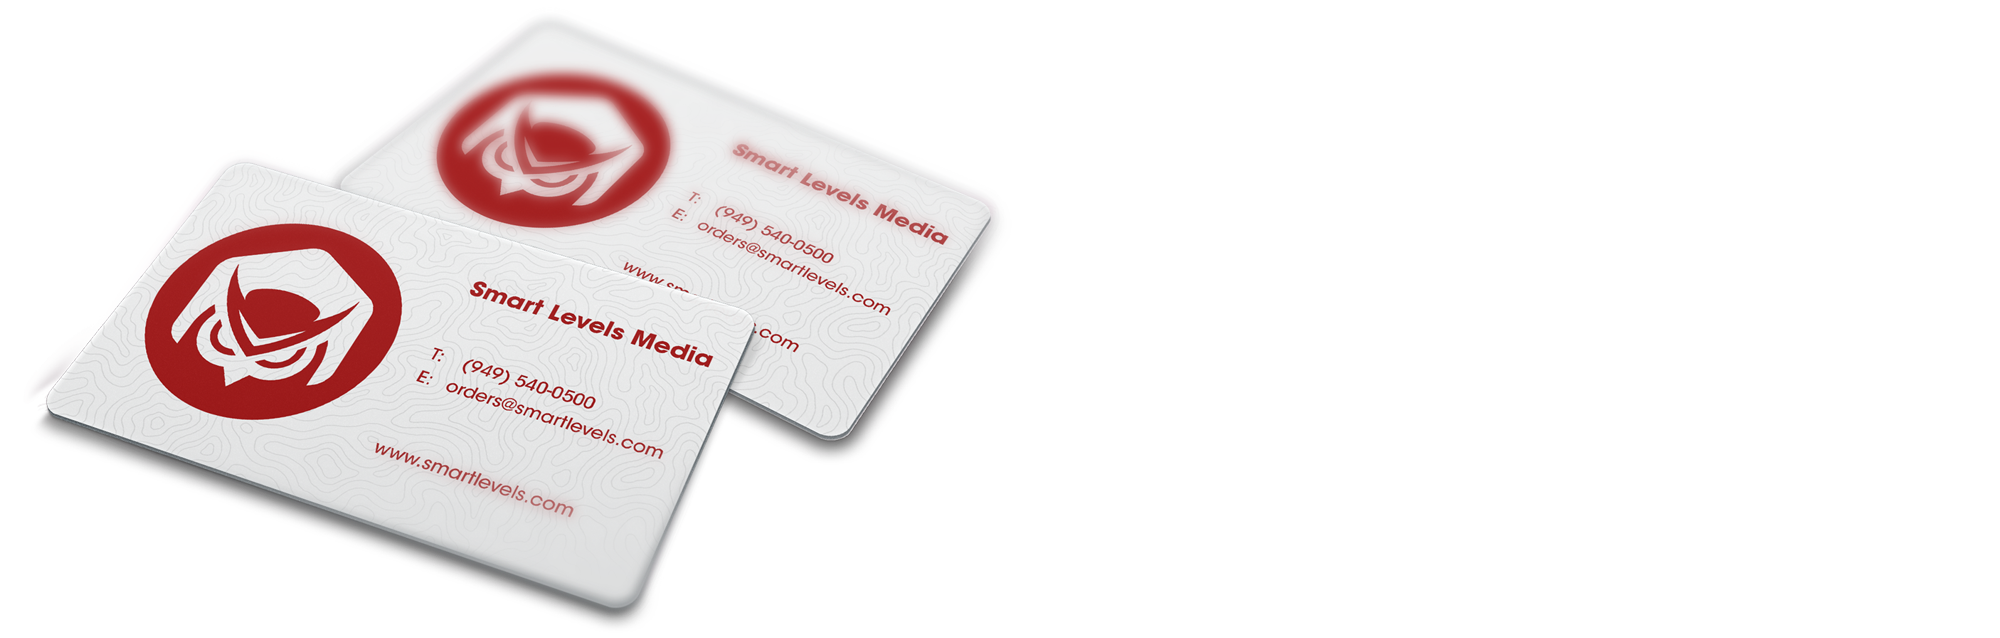 Plastic white business cards png. Card x smart levels